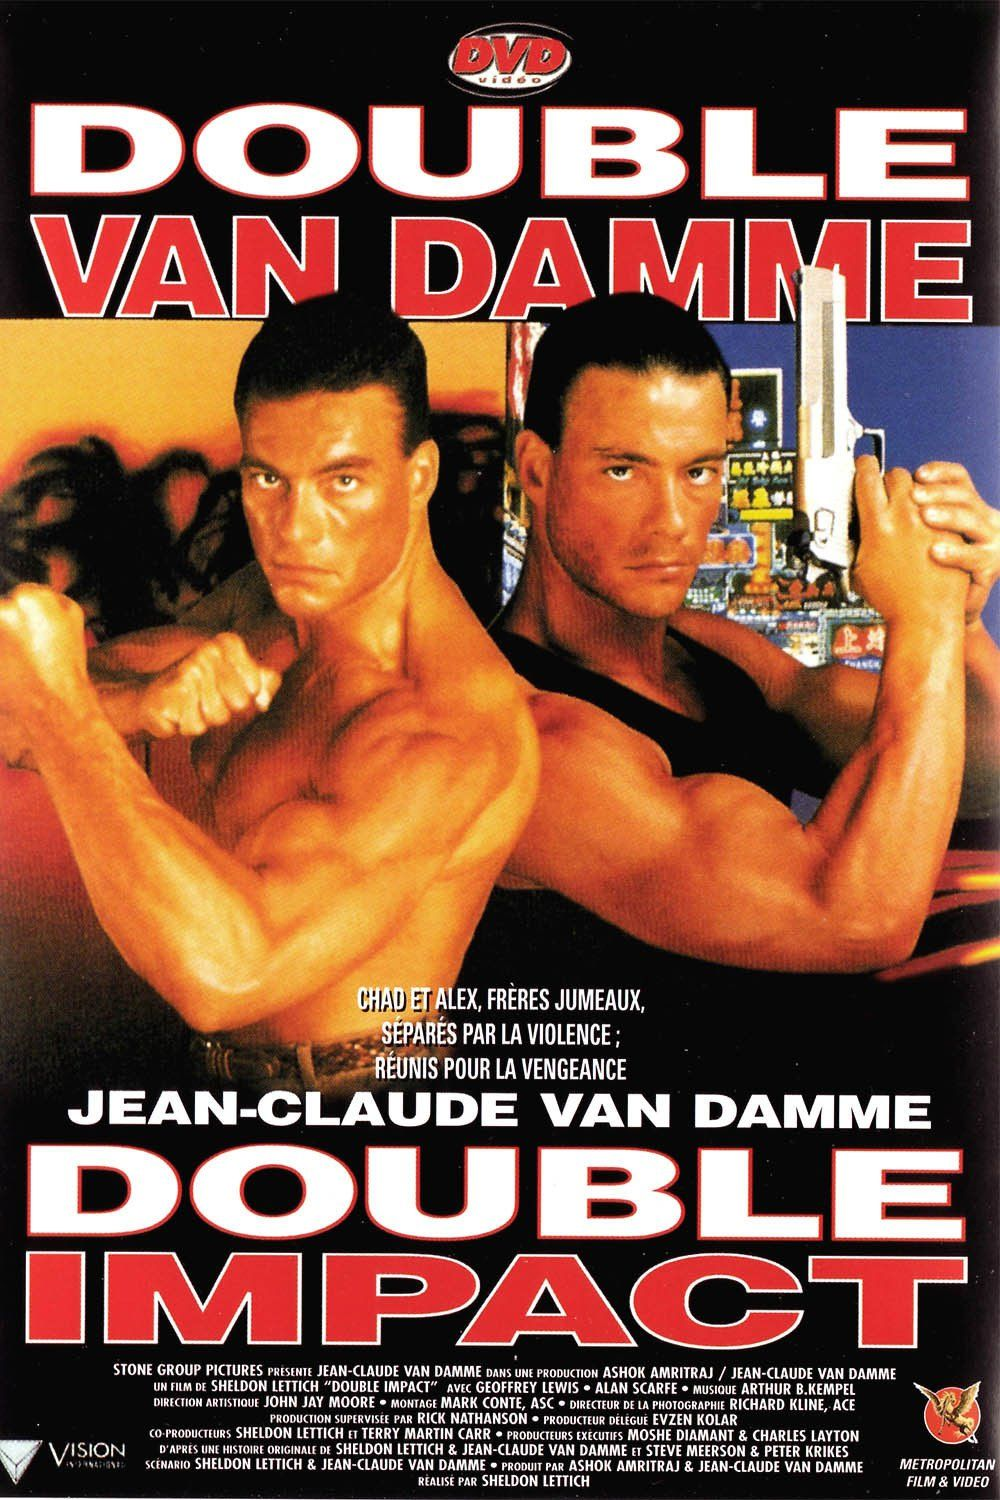 a critique of jean claude van damme in the movie double impact List of all jean-claude van damme movies & tv shows including most  successful and worst tv shows & movies  well with the film critics and  constantly received backlash for his acting skills  some of jean-claude van  damme unsuccessful films are 'cyborg,' 'streetfighter,' 'double team,' and ' swelter  double impact.